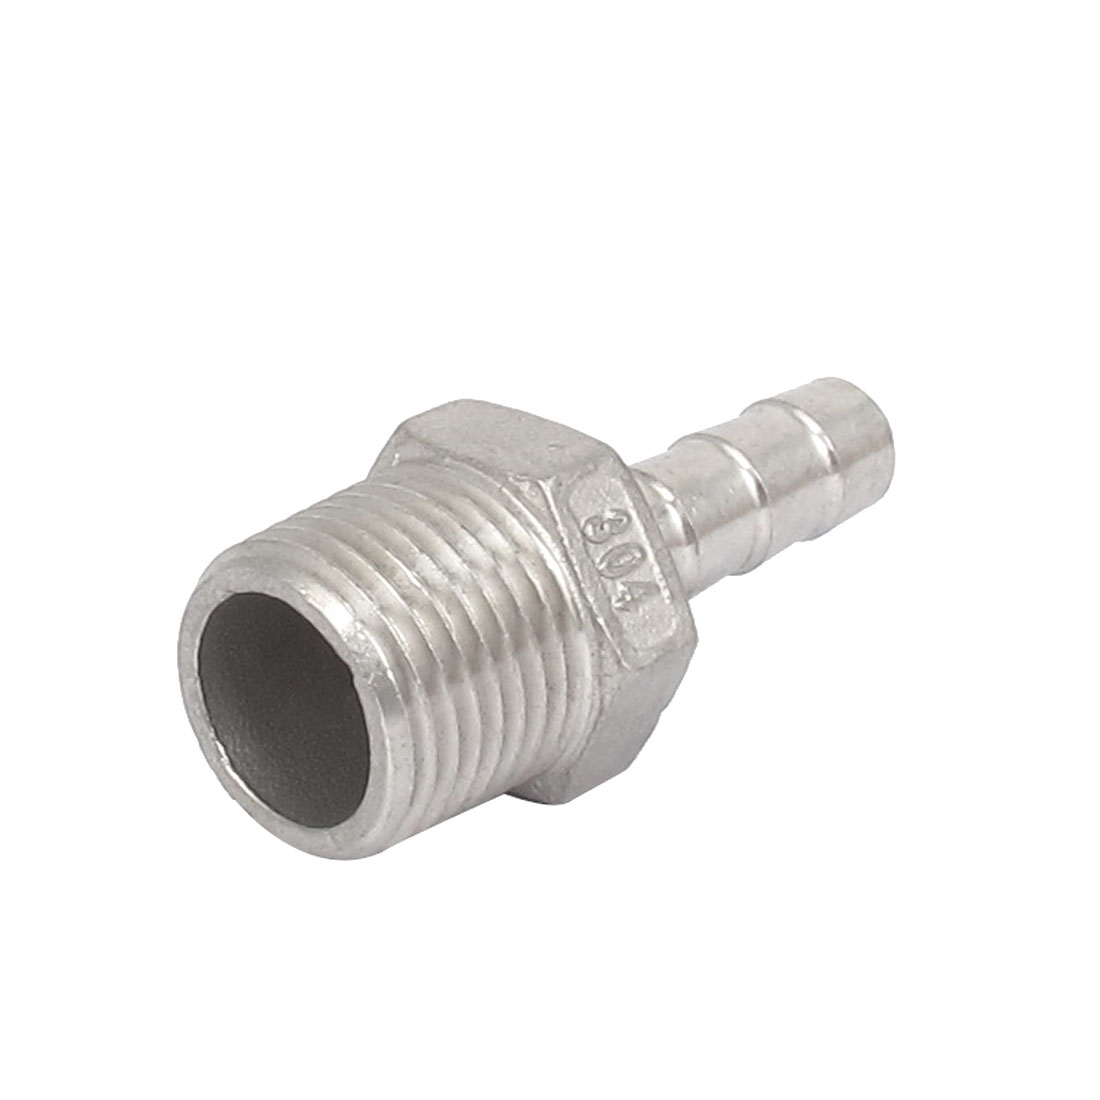 1/2BSP Male Thread to 10mm Hose Barb Straight Quick Fitting Adapter Coupler